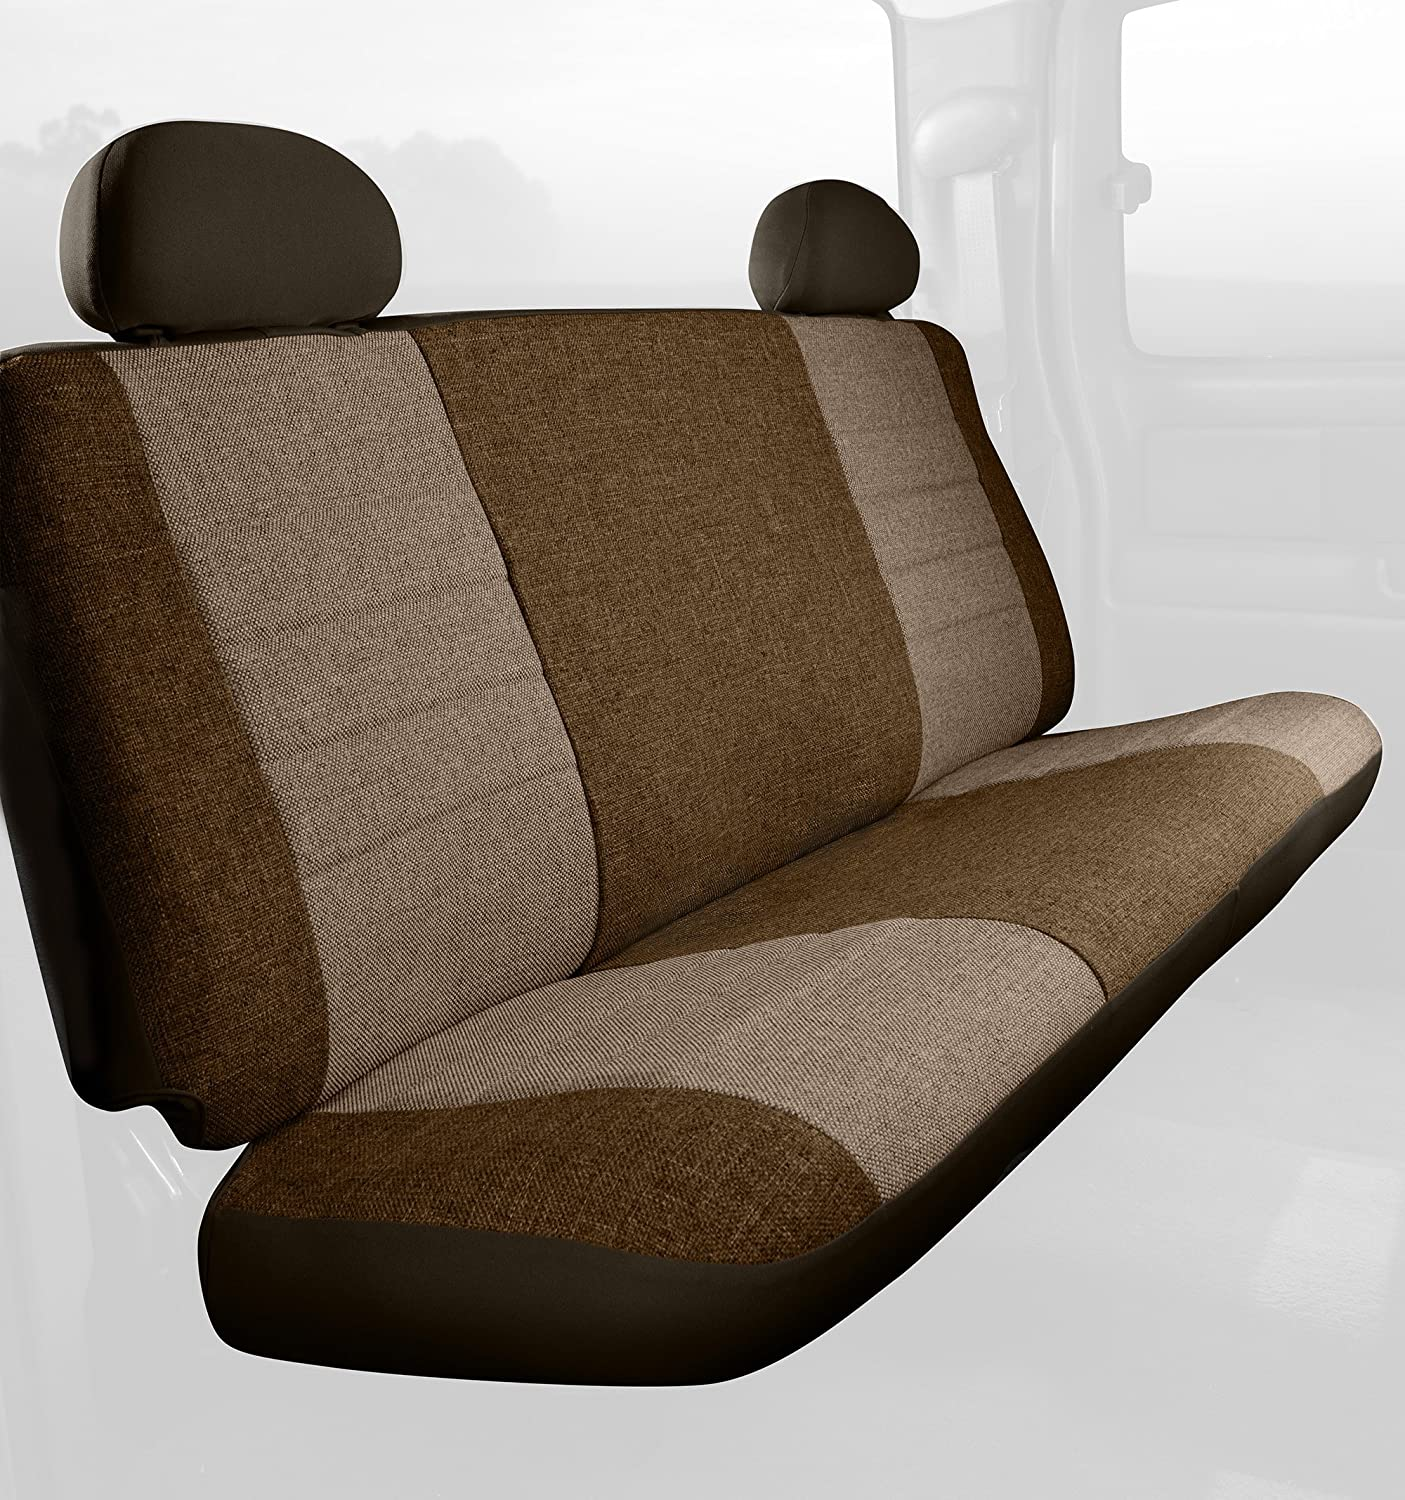 Fia OE32-10 TAUPE Custom Fit Rear Seat Cover Bench Seat Tweed, Taupe